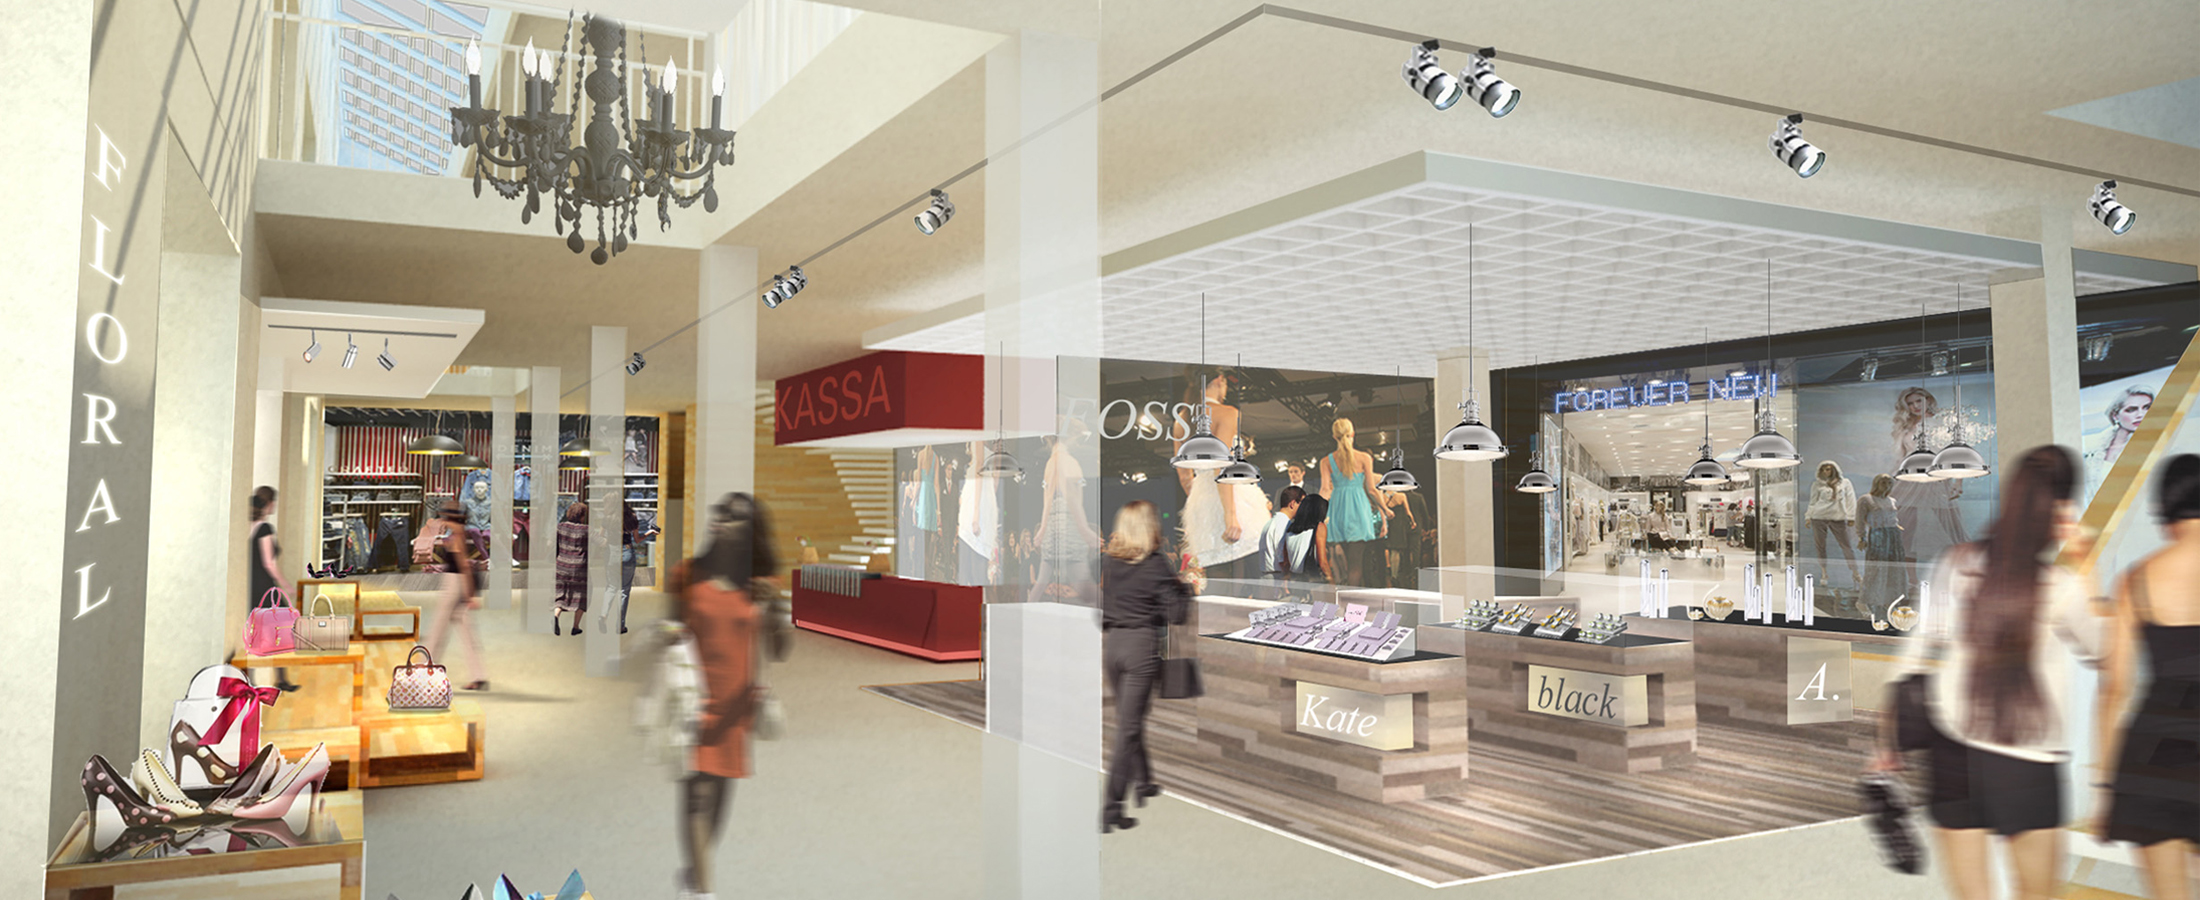 Fashion Outlet Store, Oude Passage Schiedam